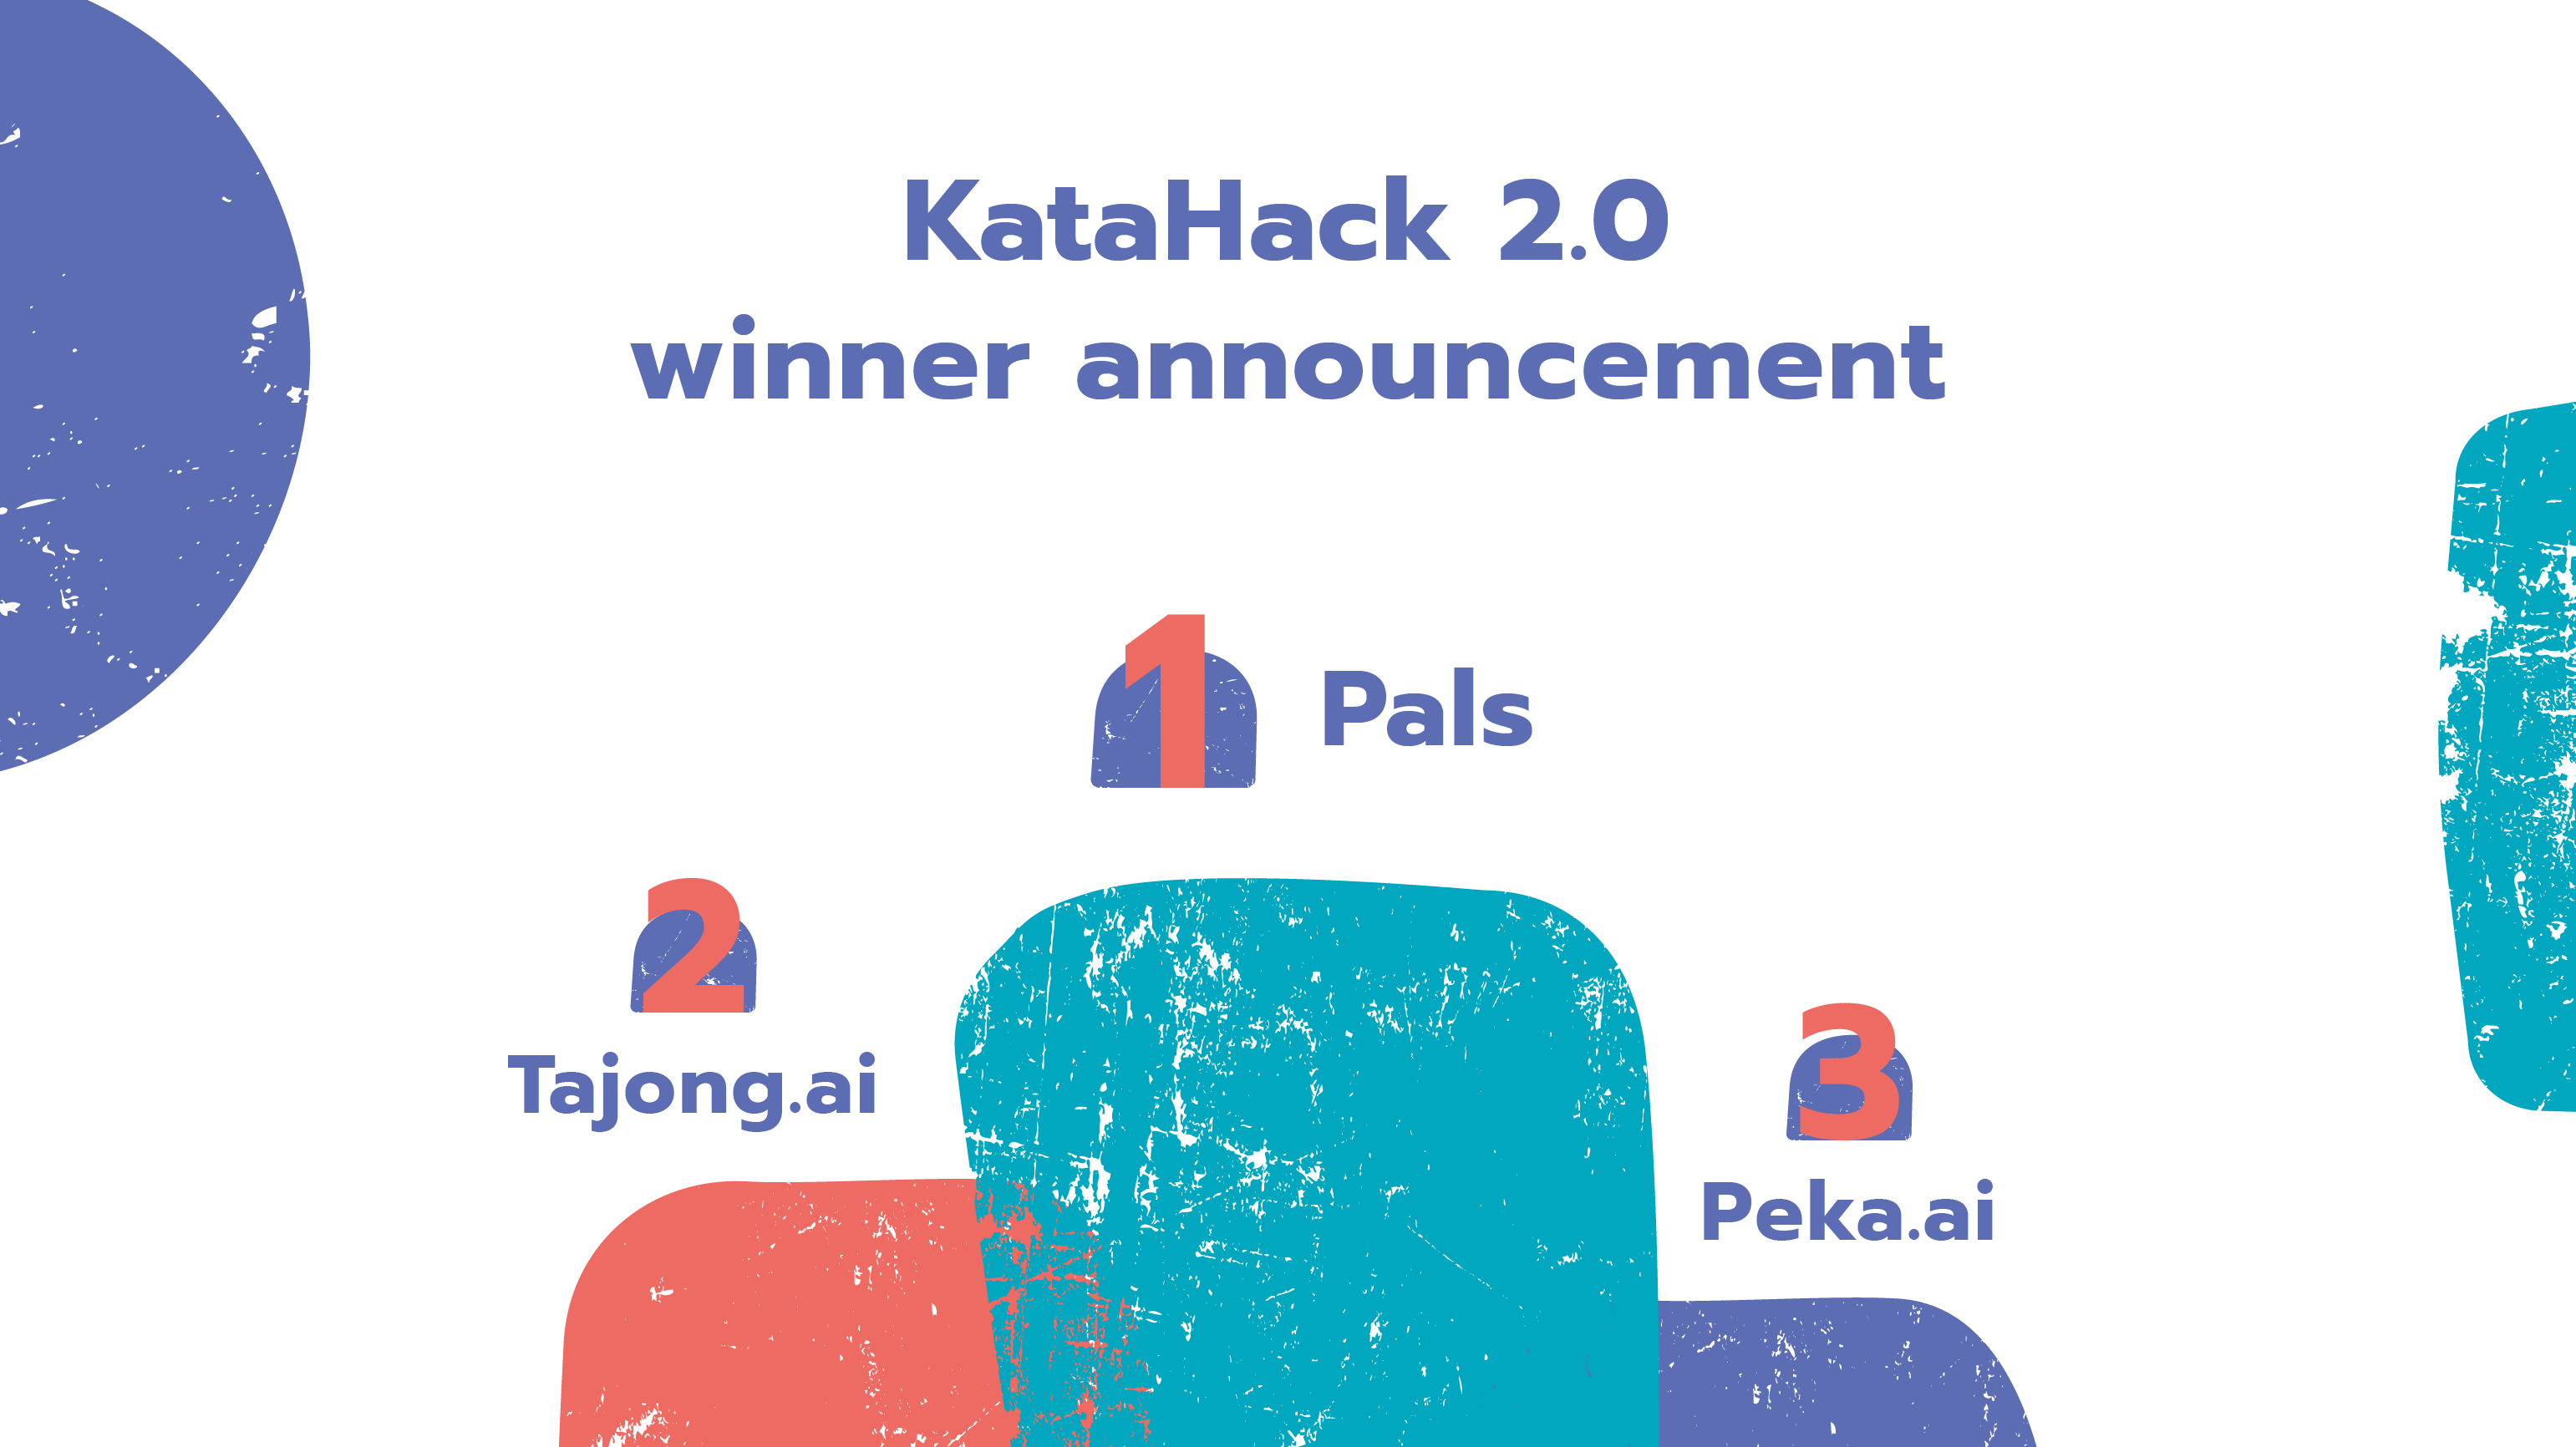 The winners of Kata.ai's KataHack 2.0 competition was also announced at INTERACT 2020.